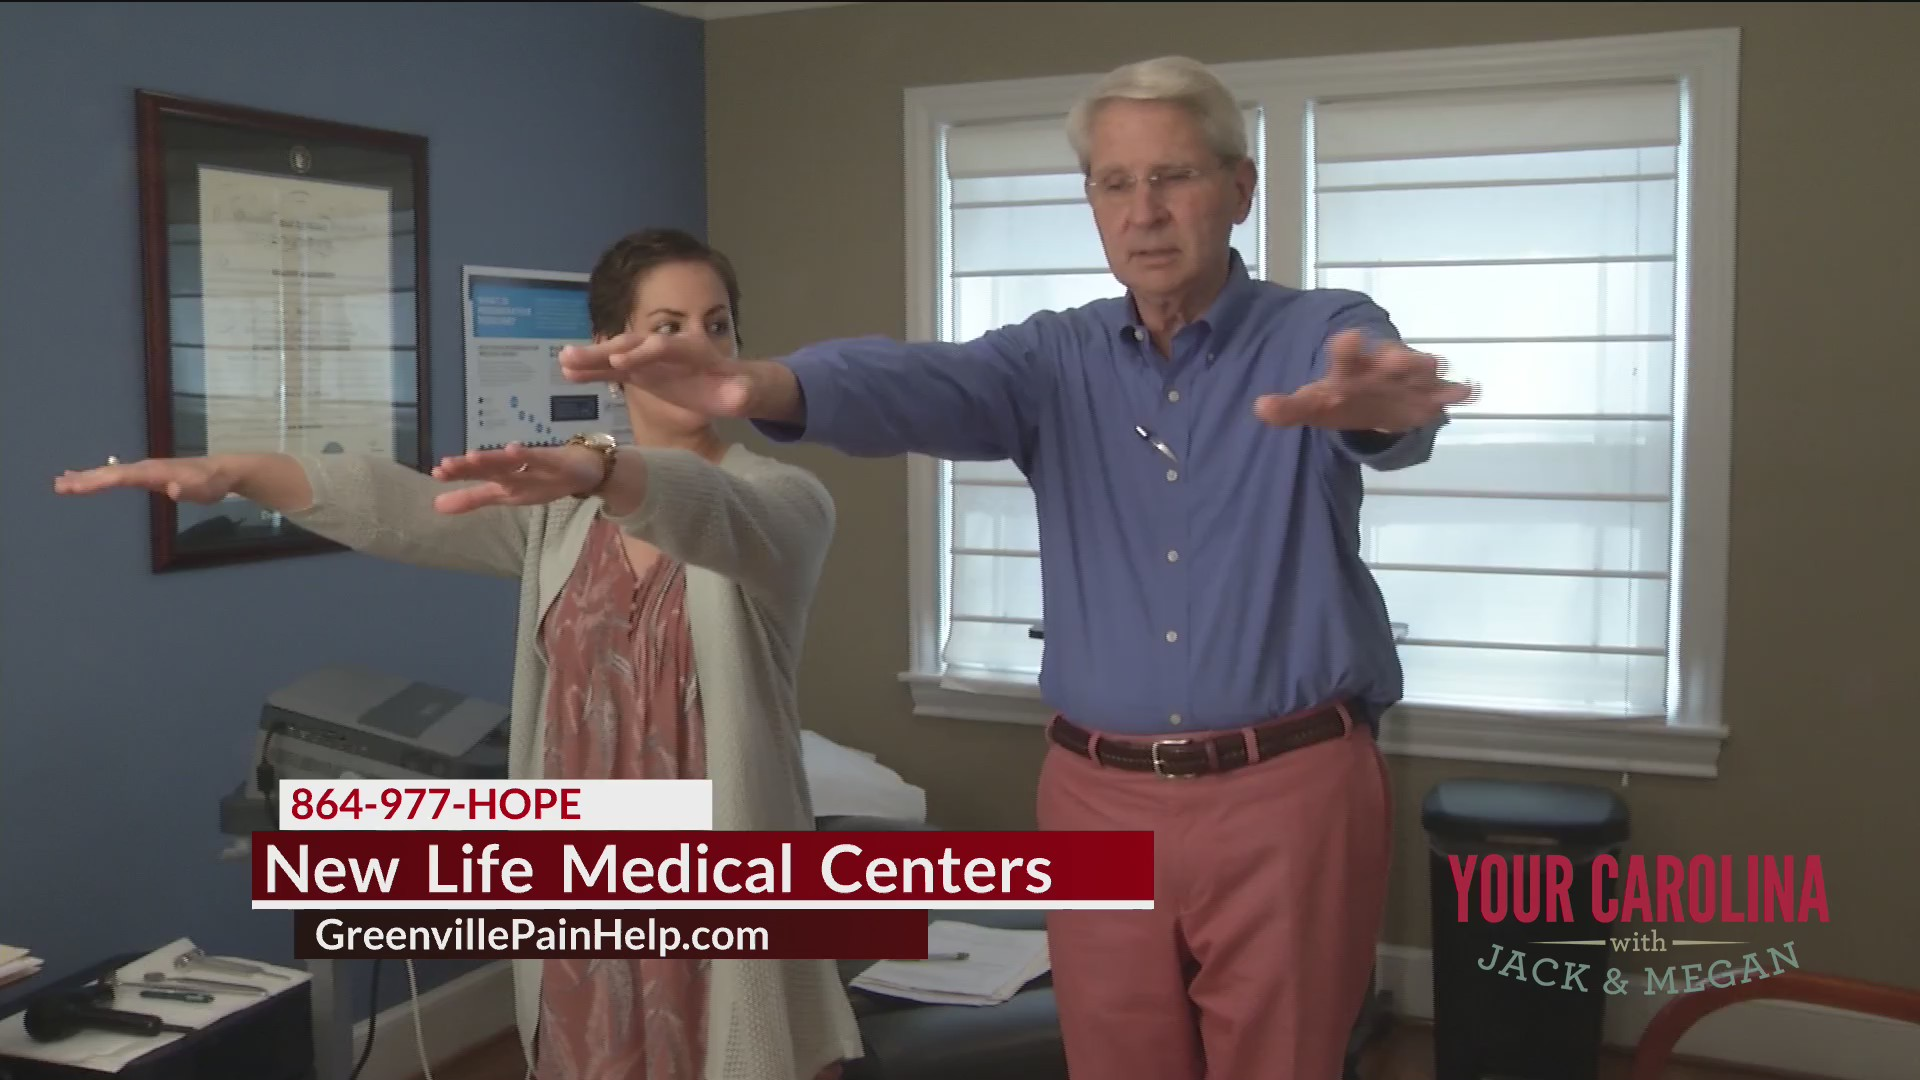 New Life Medical Centers - Neuropathy Pain Help